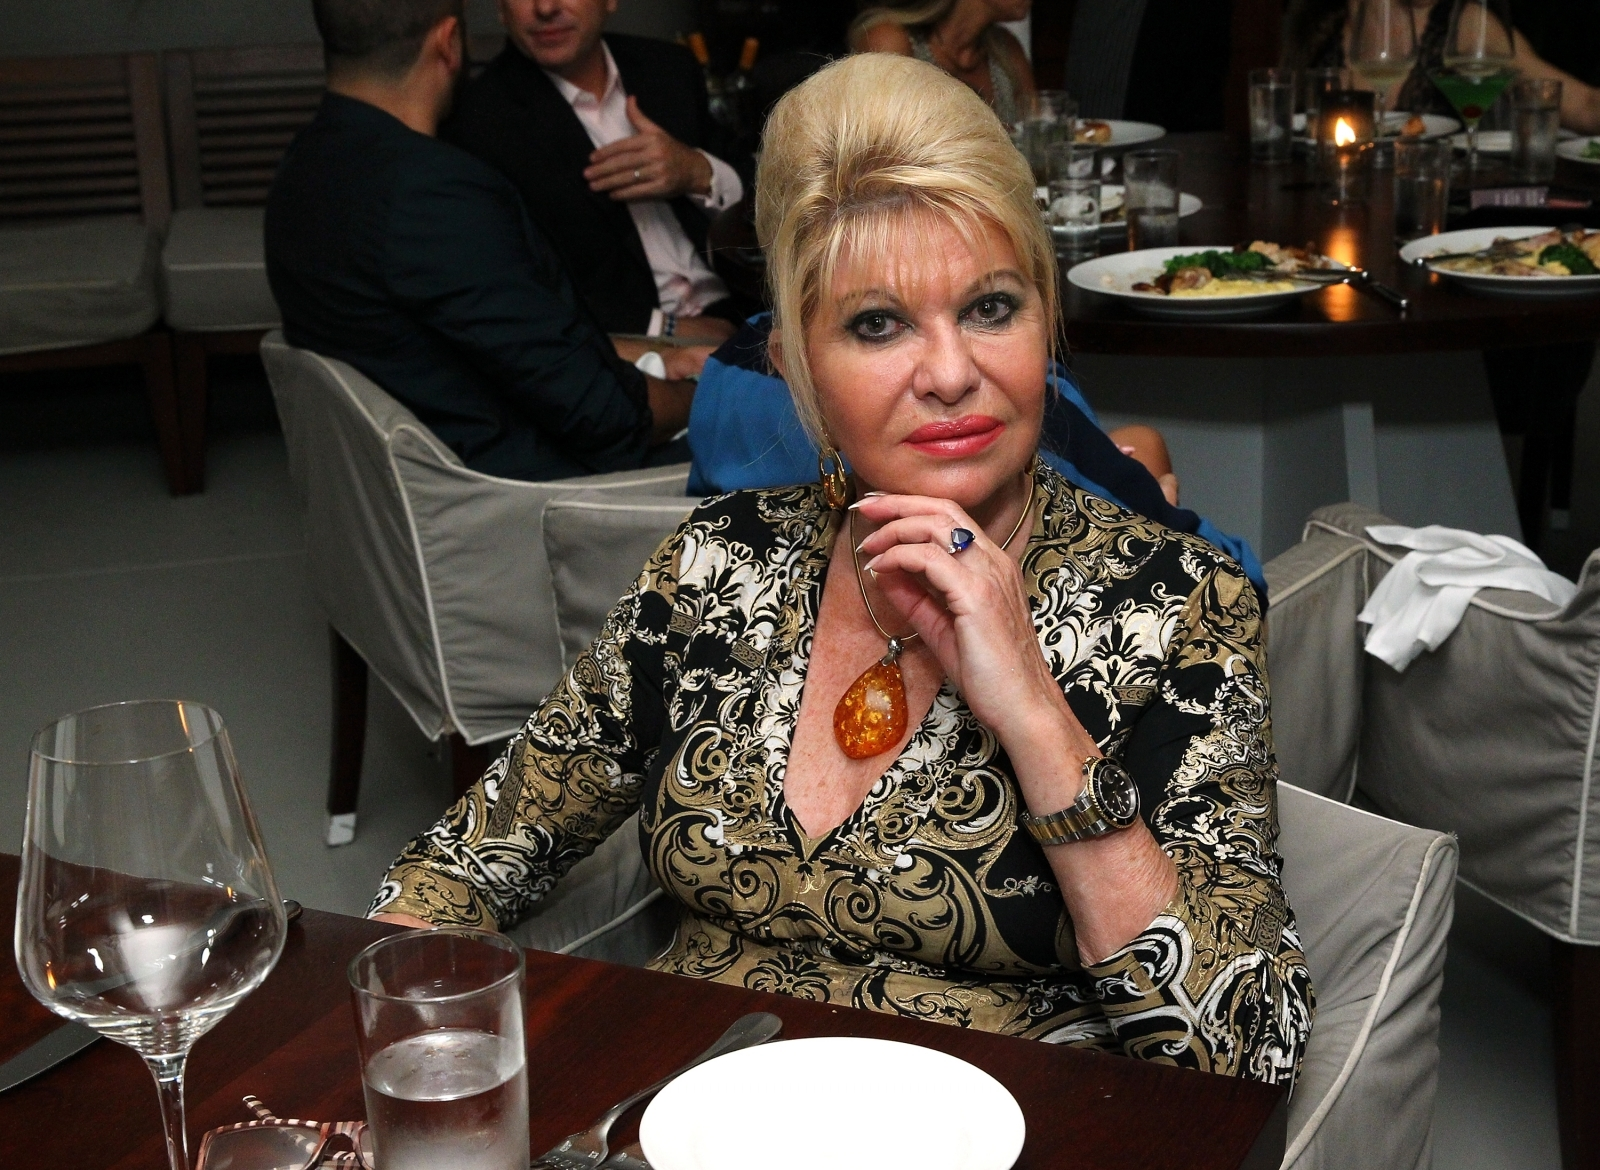 Trump asks me for tweeting advice, says his ex-wife Ivana